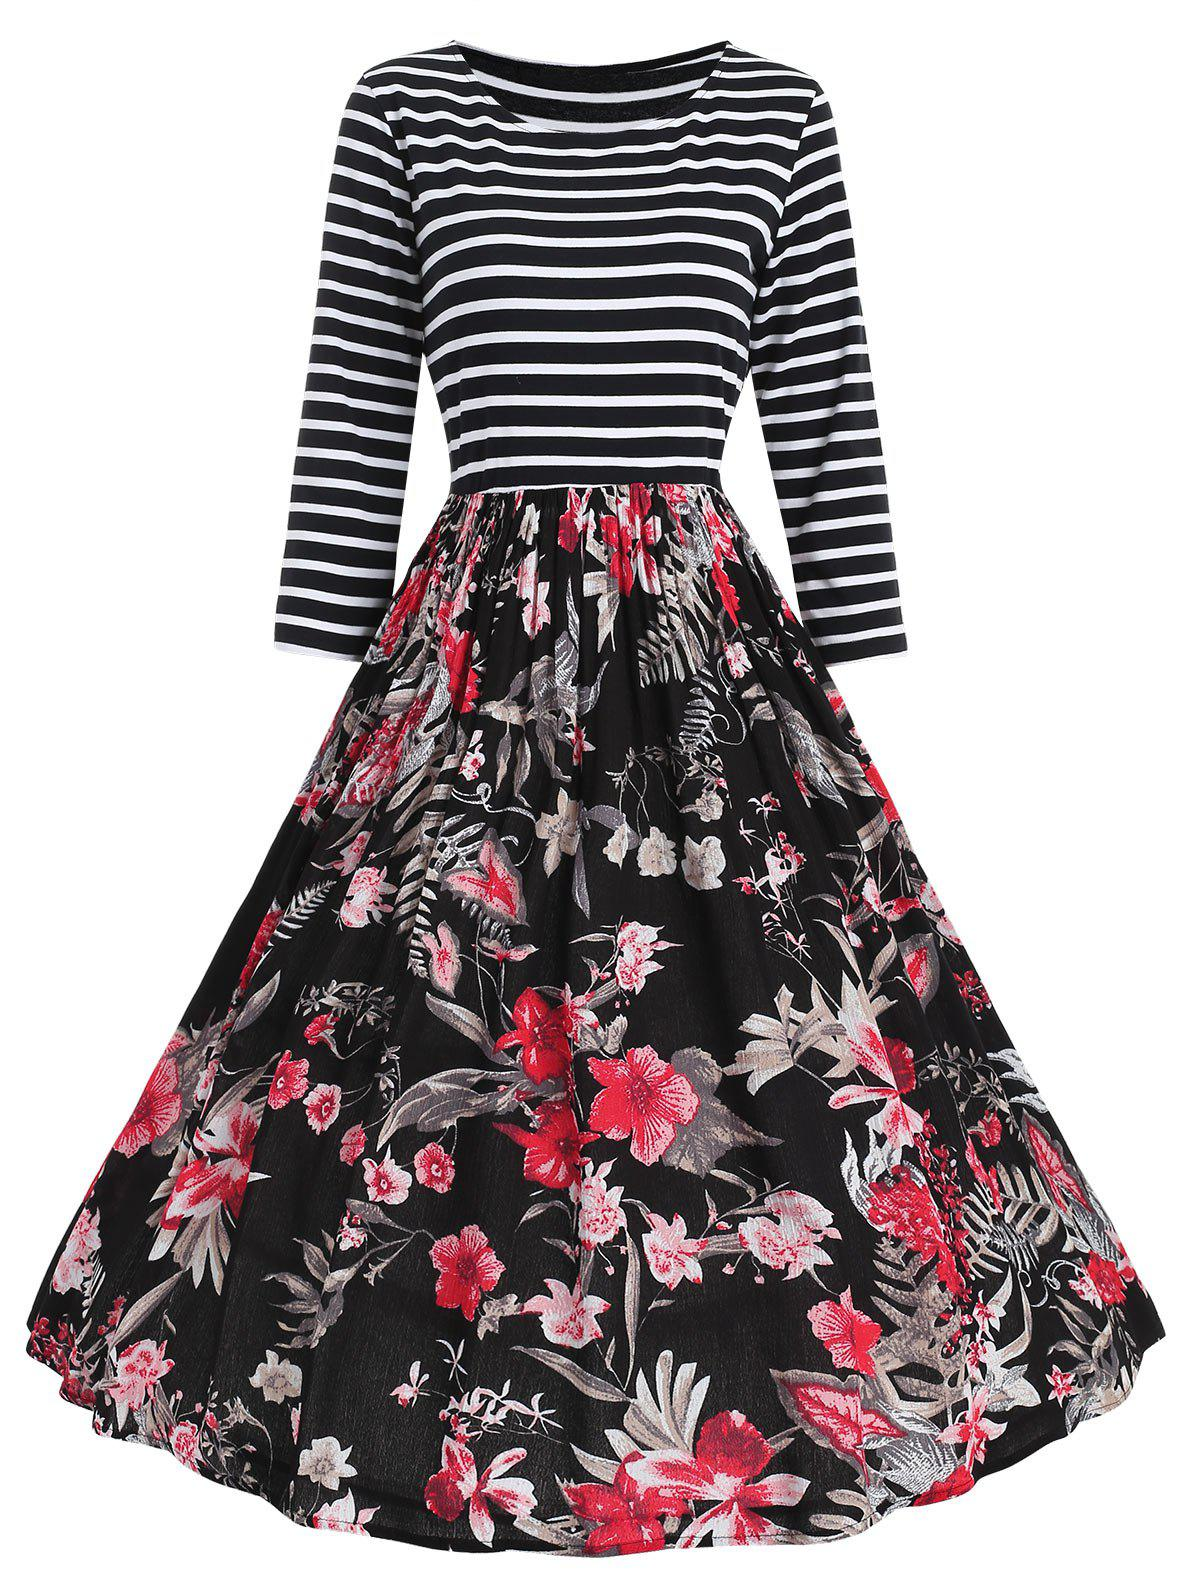 Shops Stripe Floral Print Fit And Flare Dress